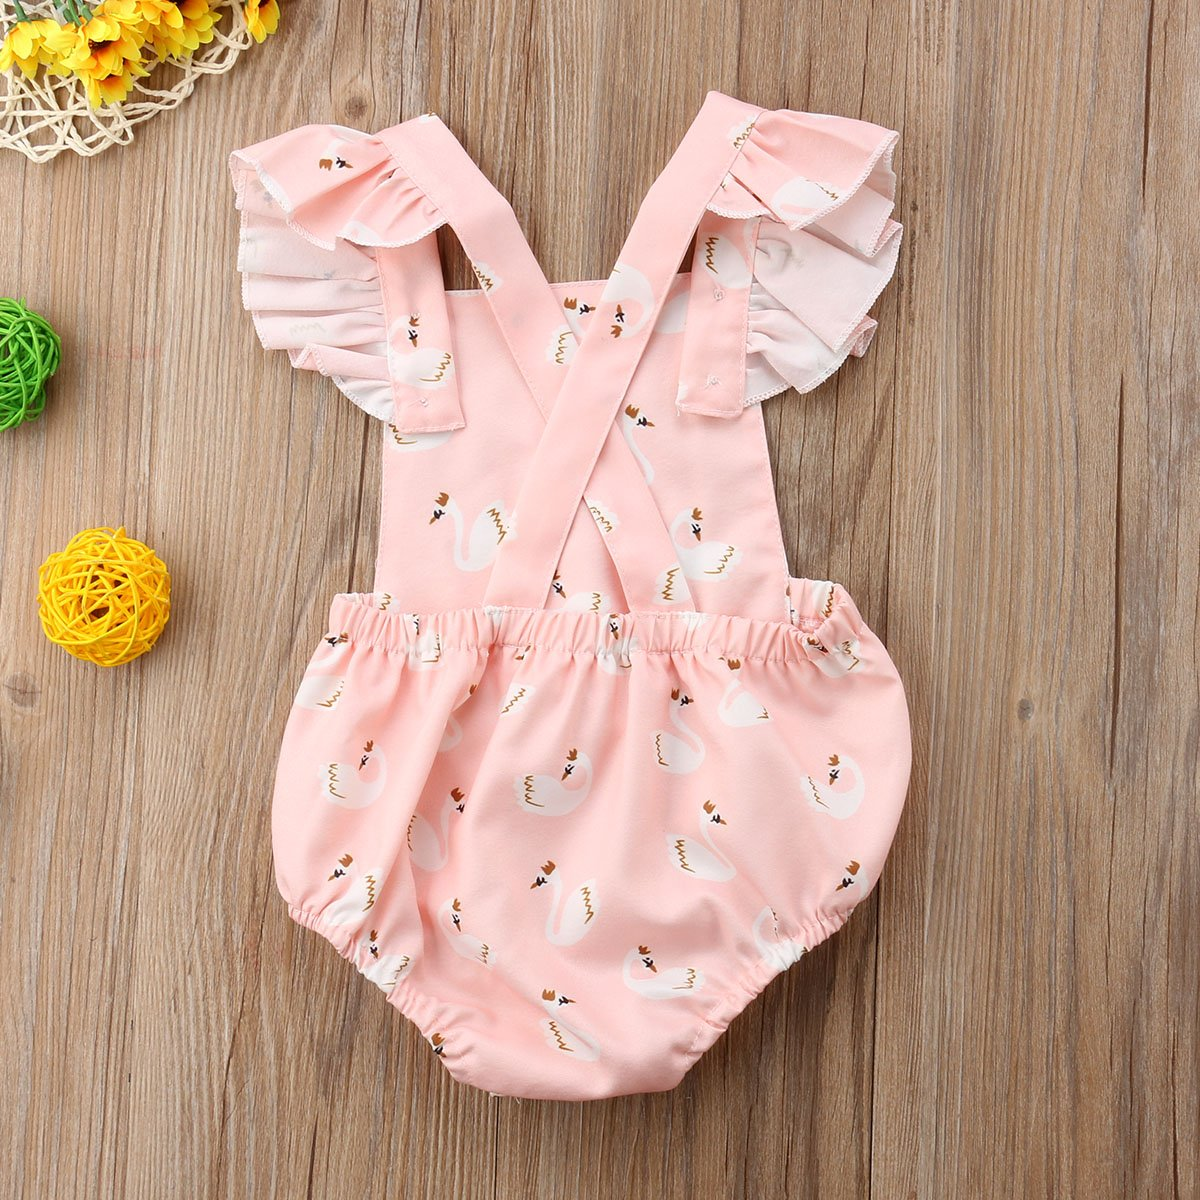 f904a30b3de Amazon.com  doublebabyjoy Baby Girls Flower Print Buttons Short Sleeve  Ruffles Backless Pink Romper Bodysuit Jumpsuit  Clothing